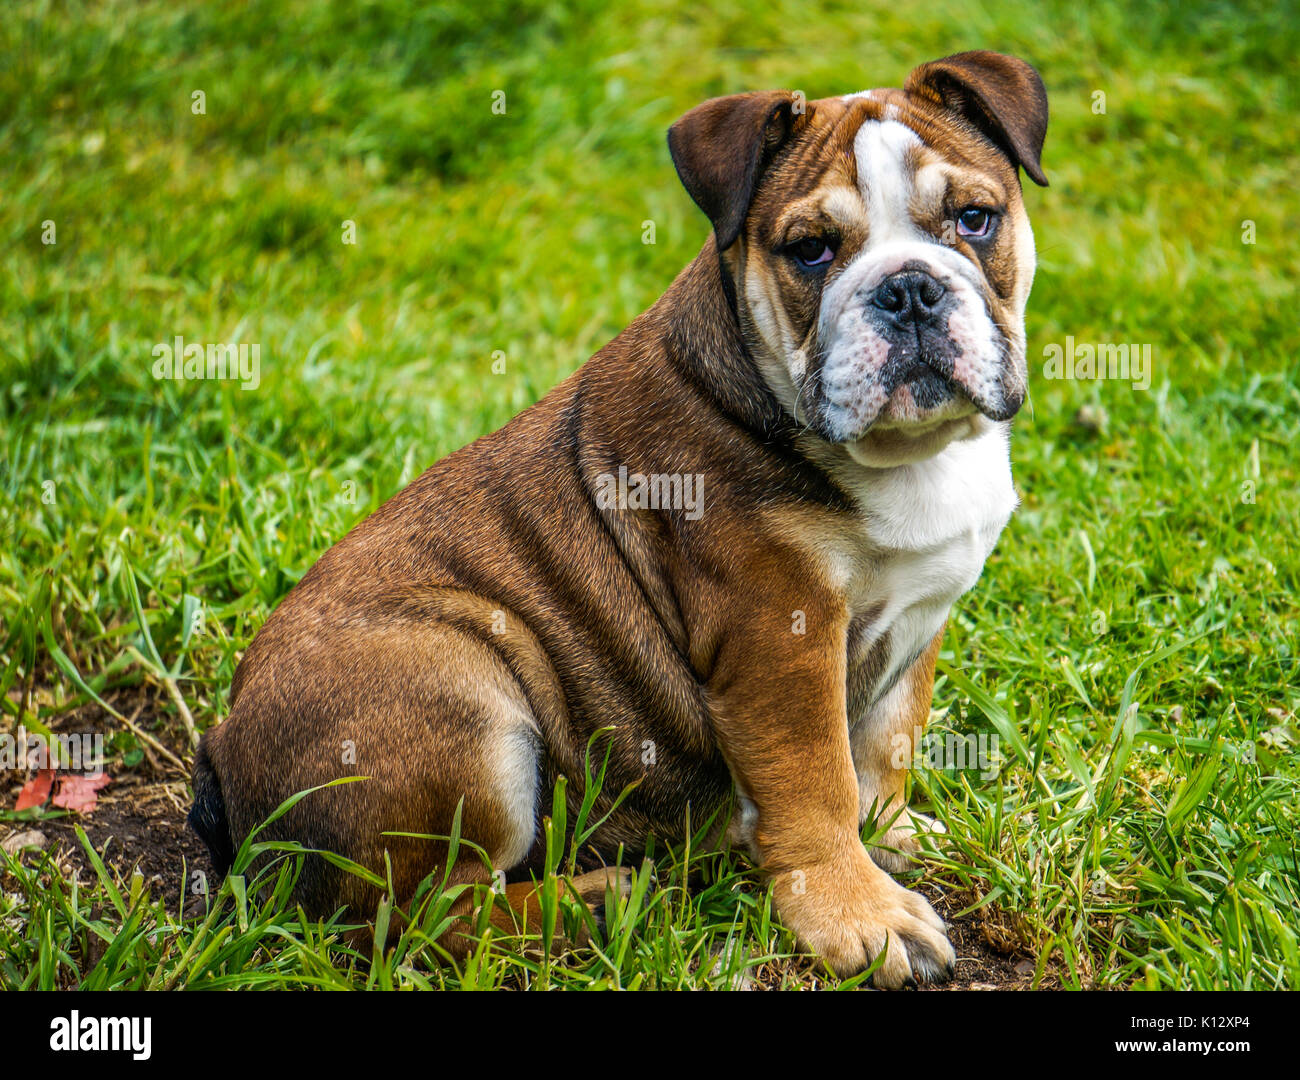 A beautiful four months old, red English / British bulldog male puppy with white mask, confidently sitting on grass in his garden, facing the camera. - Stock Image